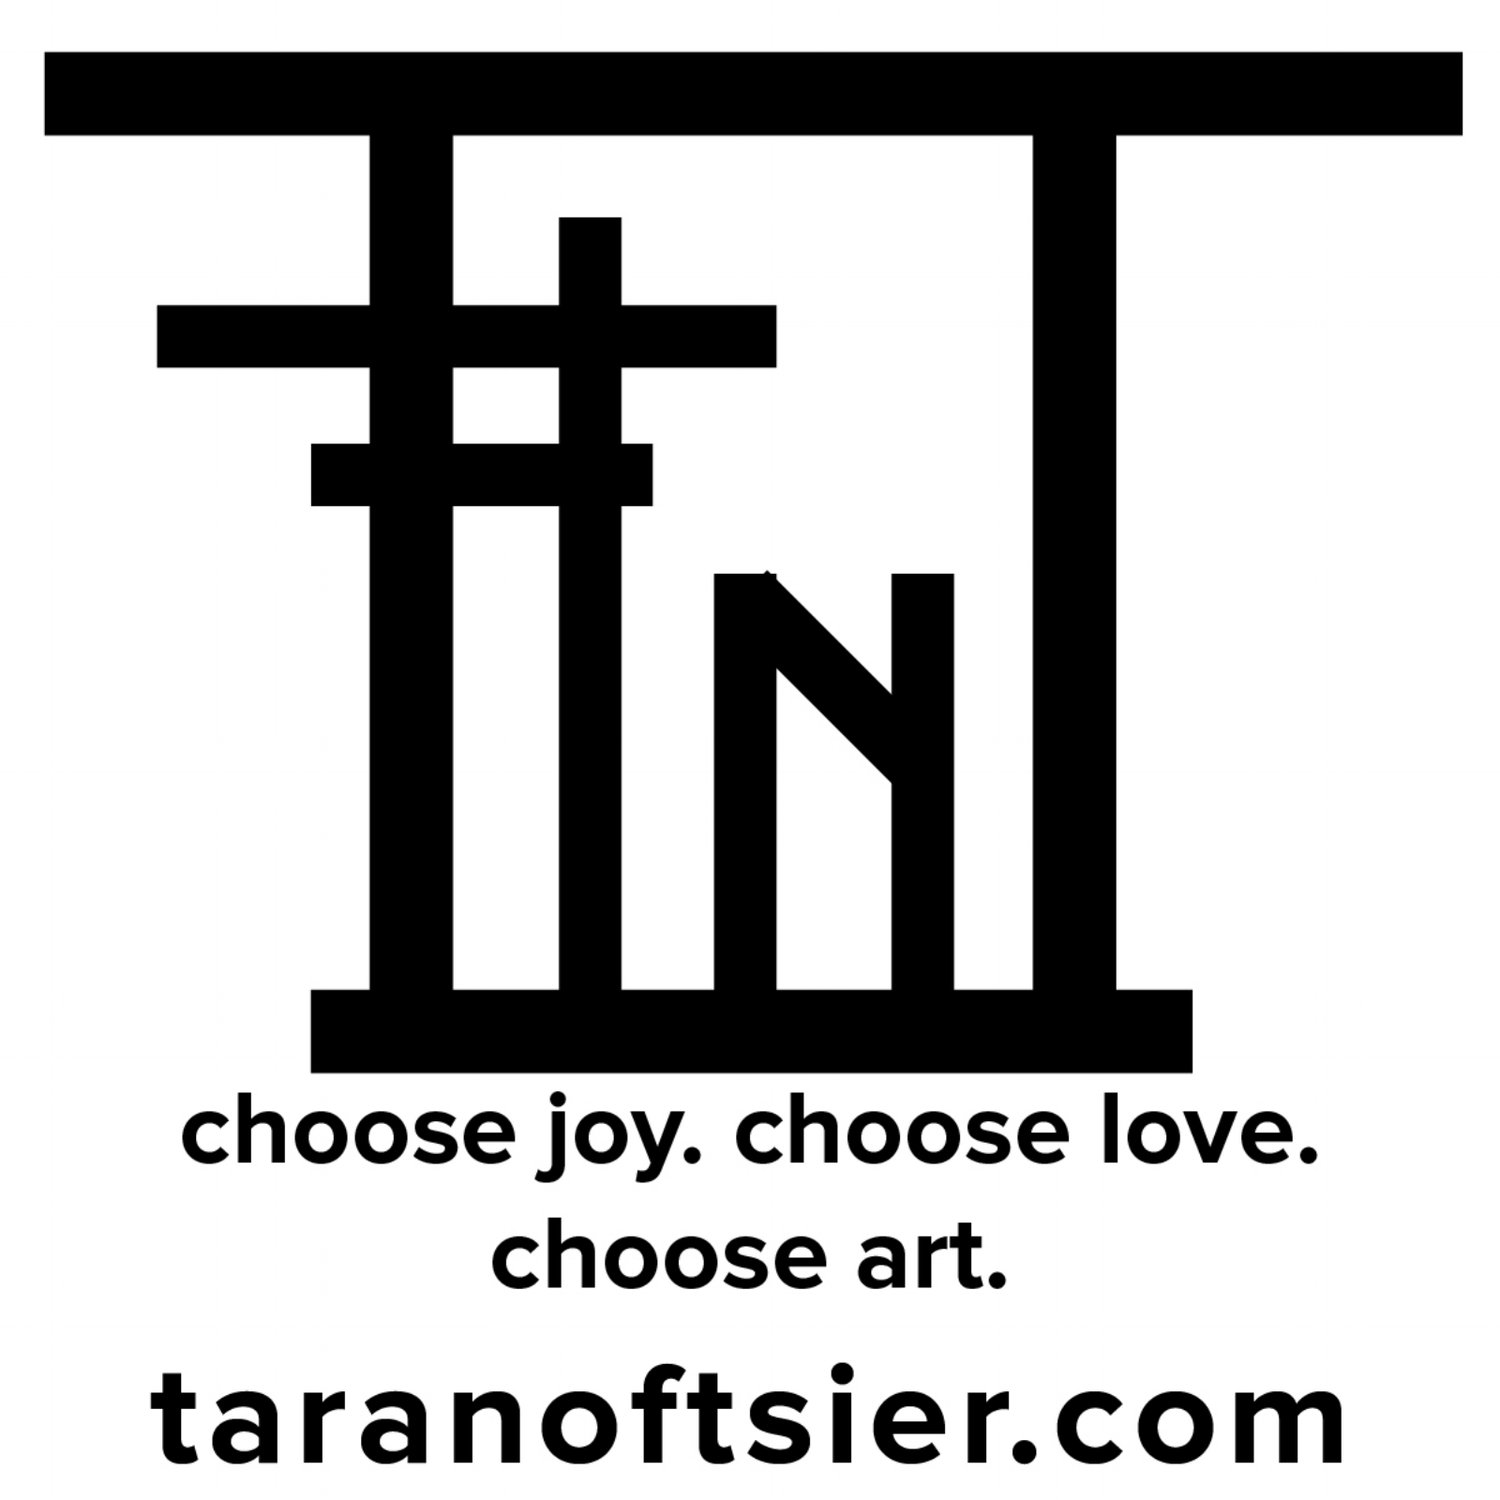 tara noftsier art studio - choose joy. choose love. choose art.